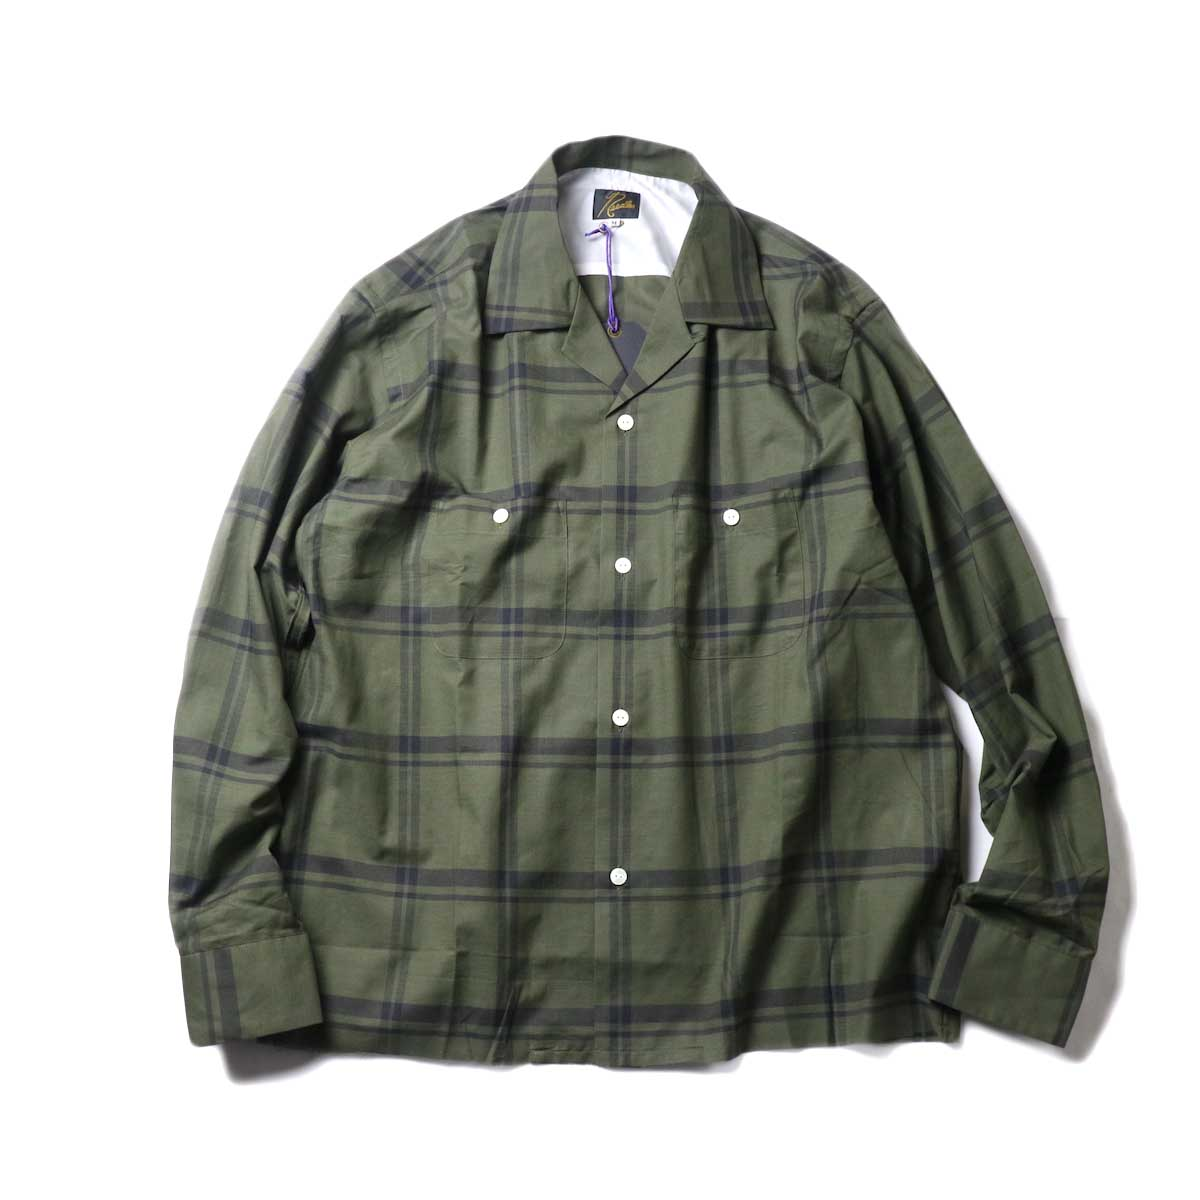 Needles / C.O.B One-Up Shirt -C/S Plaid (Olive)